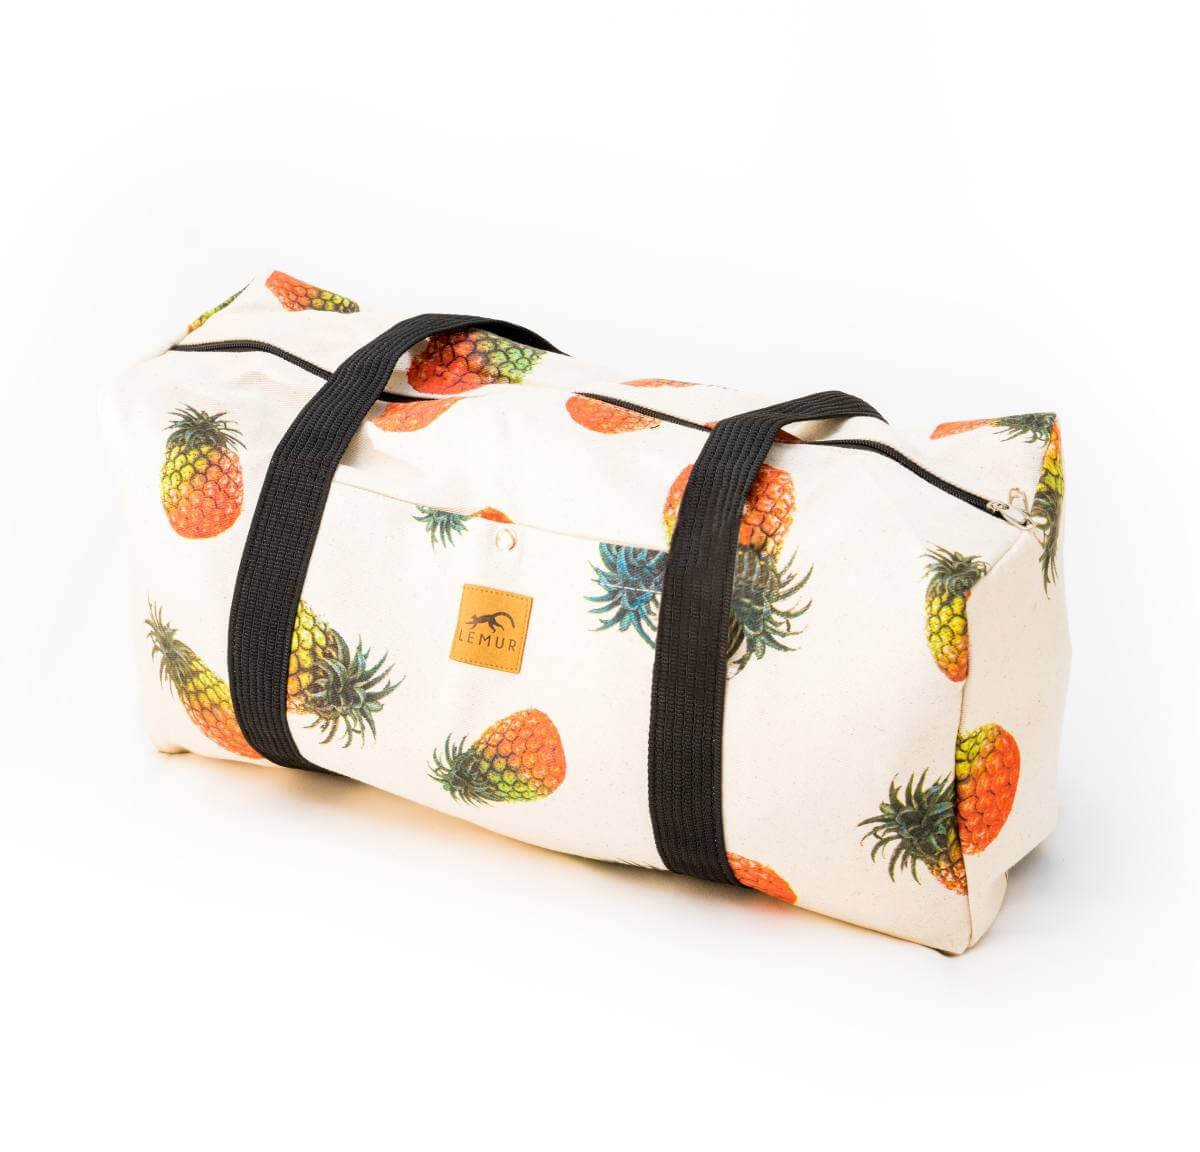 Canvas Duffel Bag - 20 Liter Gym Tote, Foldable Overnight Travel Weekend Luggage by Lemur Bags (Pineapples)